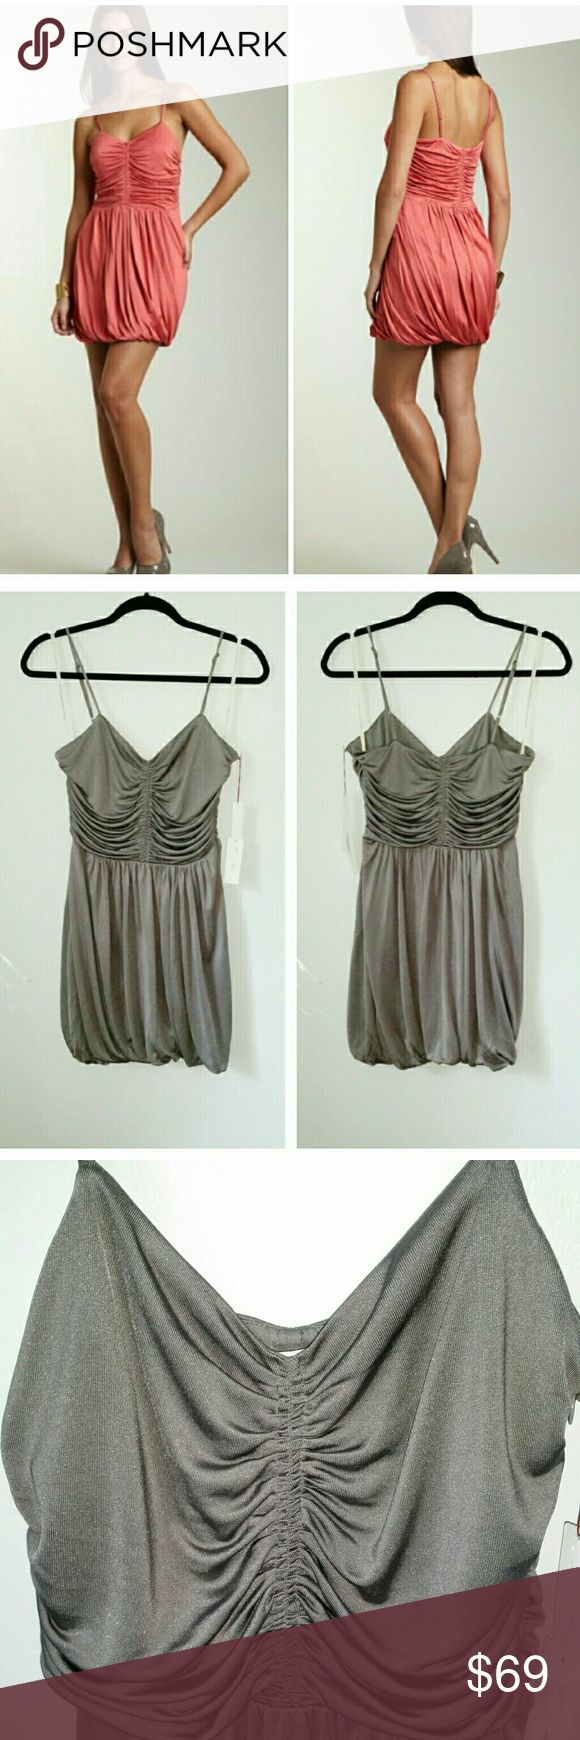 NWT Silver date night dress S Slinky silk knit camisole dress. Bubble skirt. Ruched front. Adjustable spaghetti straps. Side zipper. Elastic waist. Fully lined.  Great for: girls night out, date night, wedding, cocktail party, prom after party.  Clean. Perfect condition.  Style # 60616 Twelfth Street by Cynthia Vincent Dresses Mini